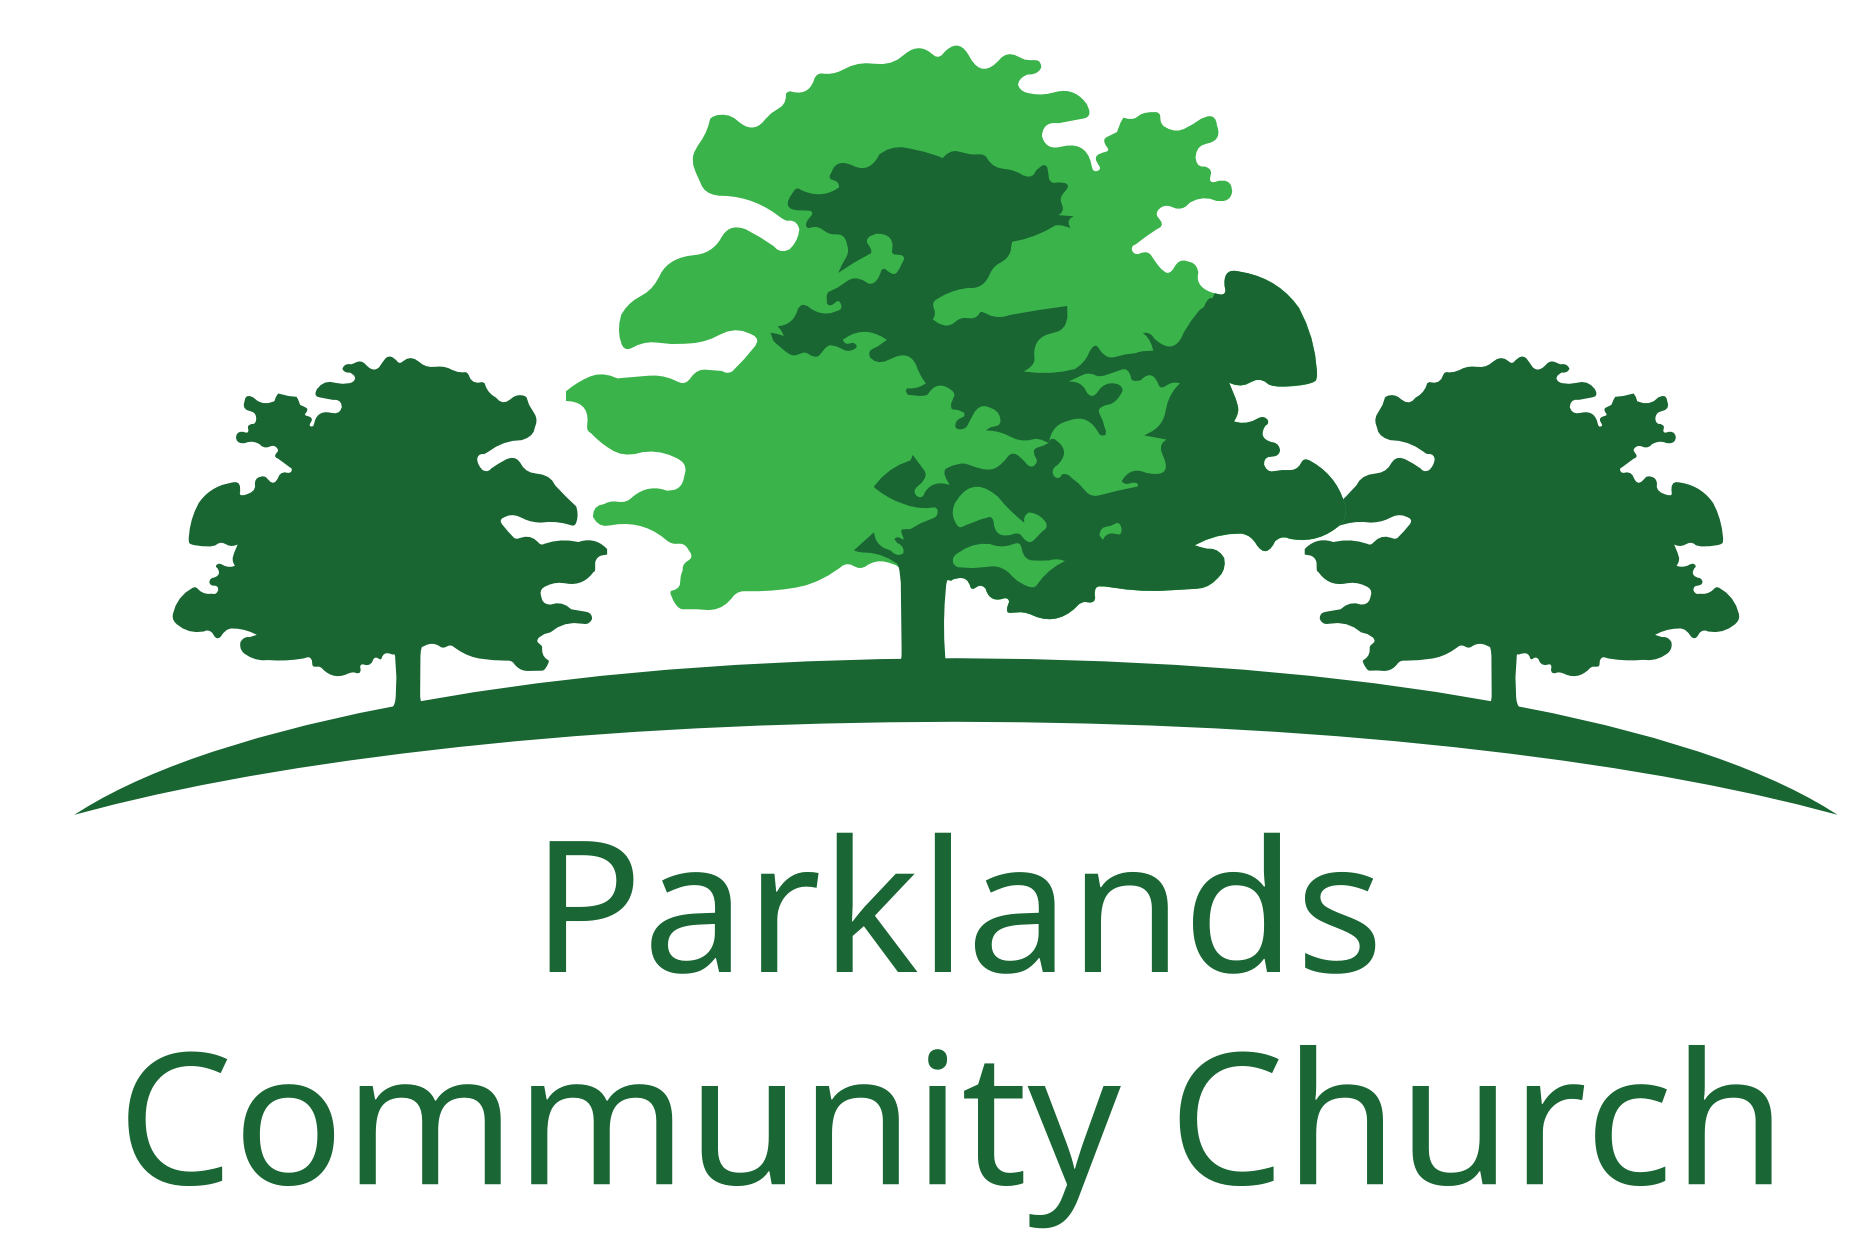 Parklands Community Church